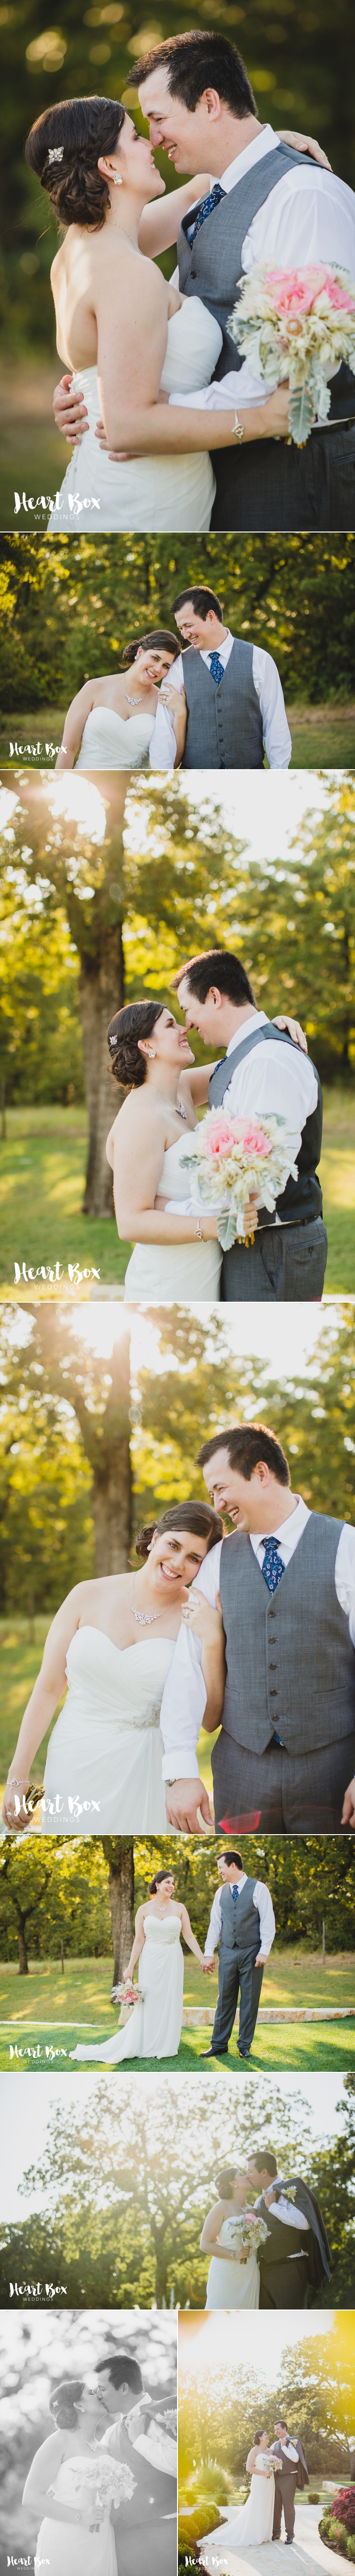 Waggoner Wedding Collages 10.jpg